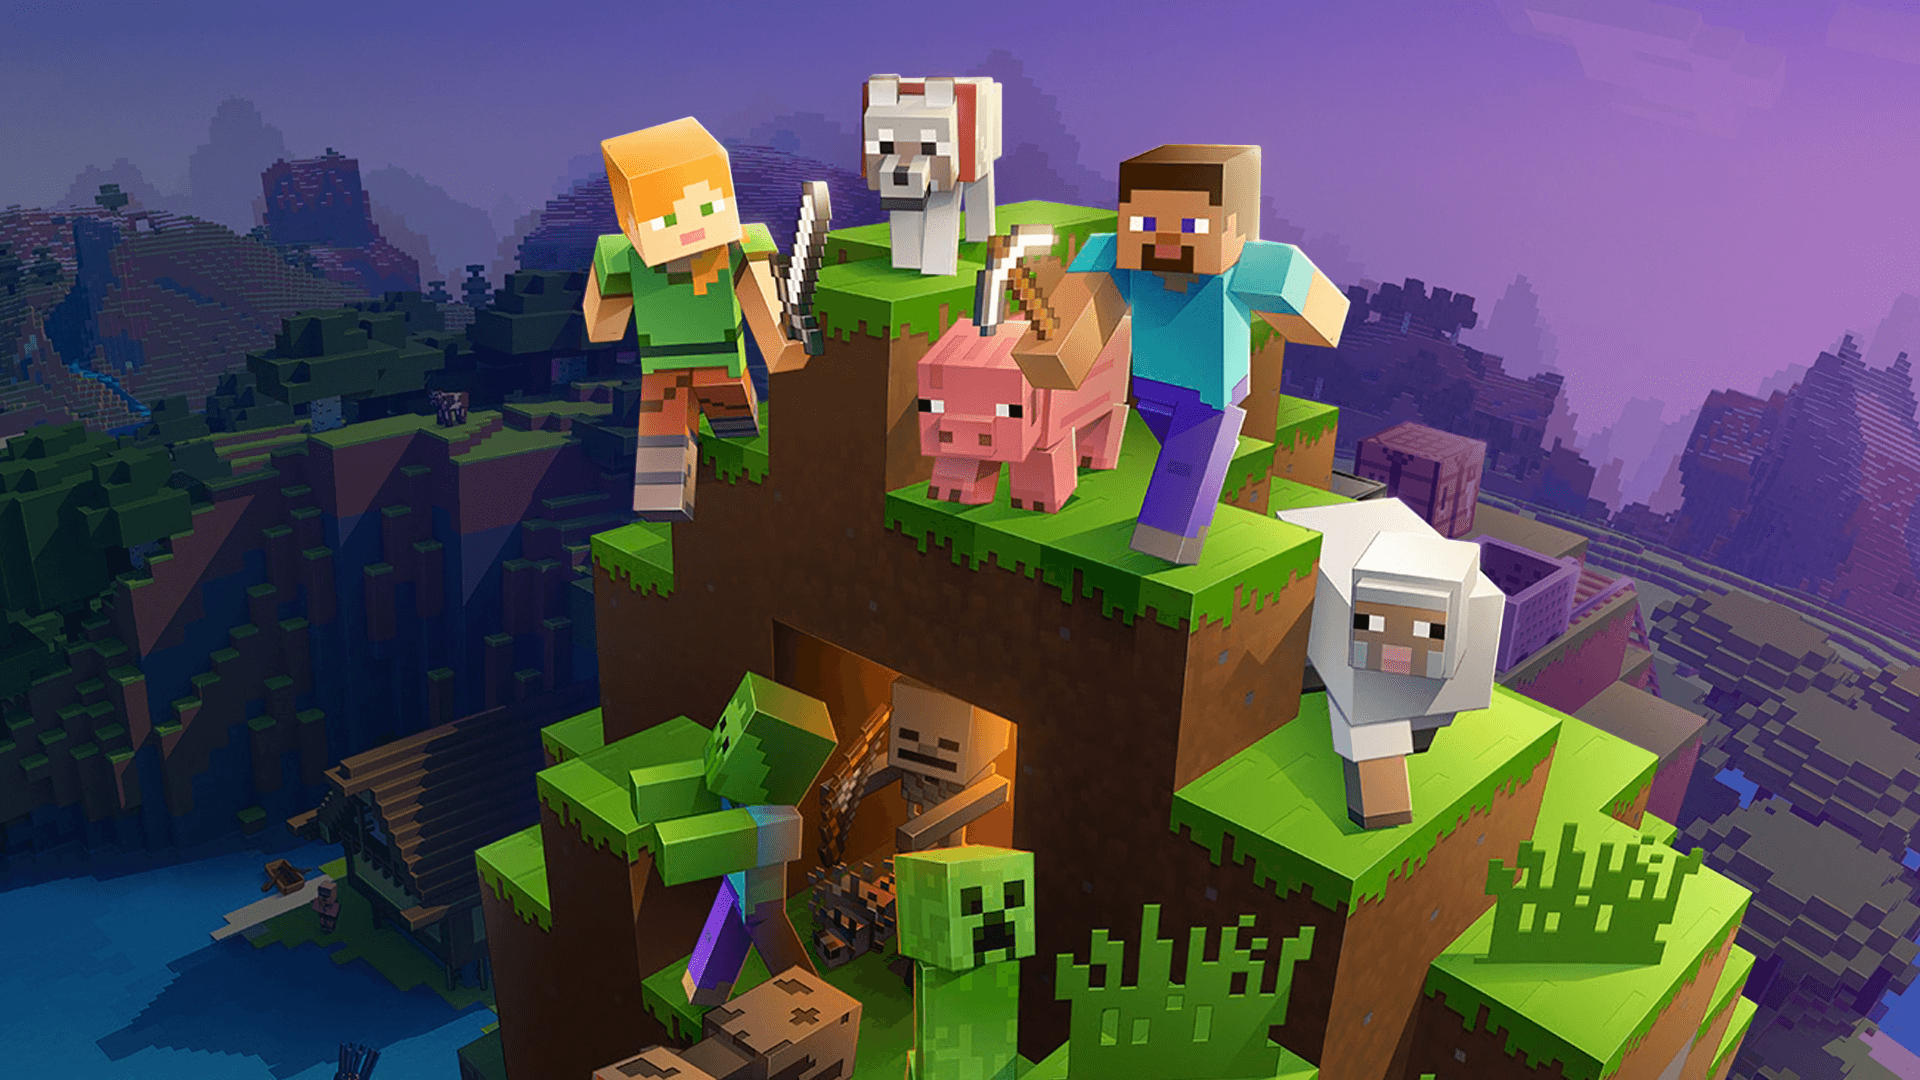 Minecraft: Education Edition is now available on Chromebooks